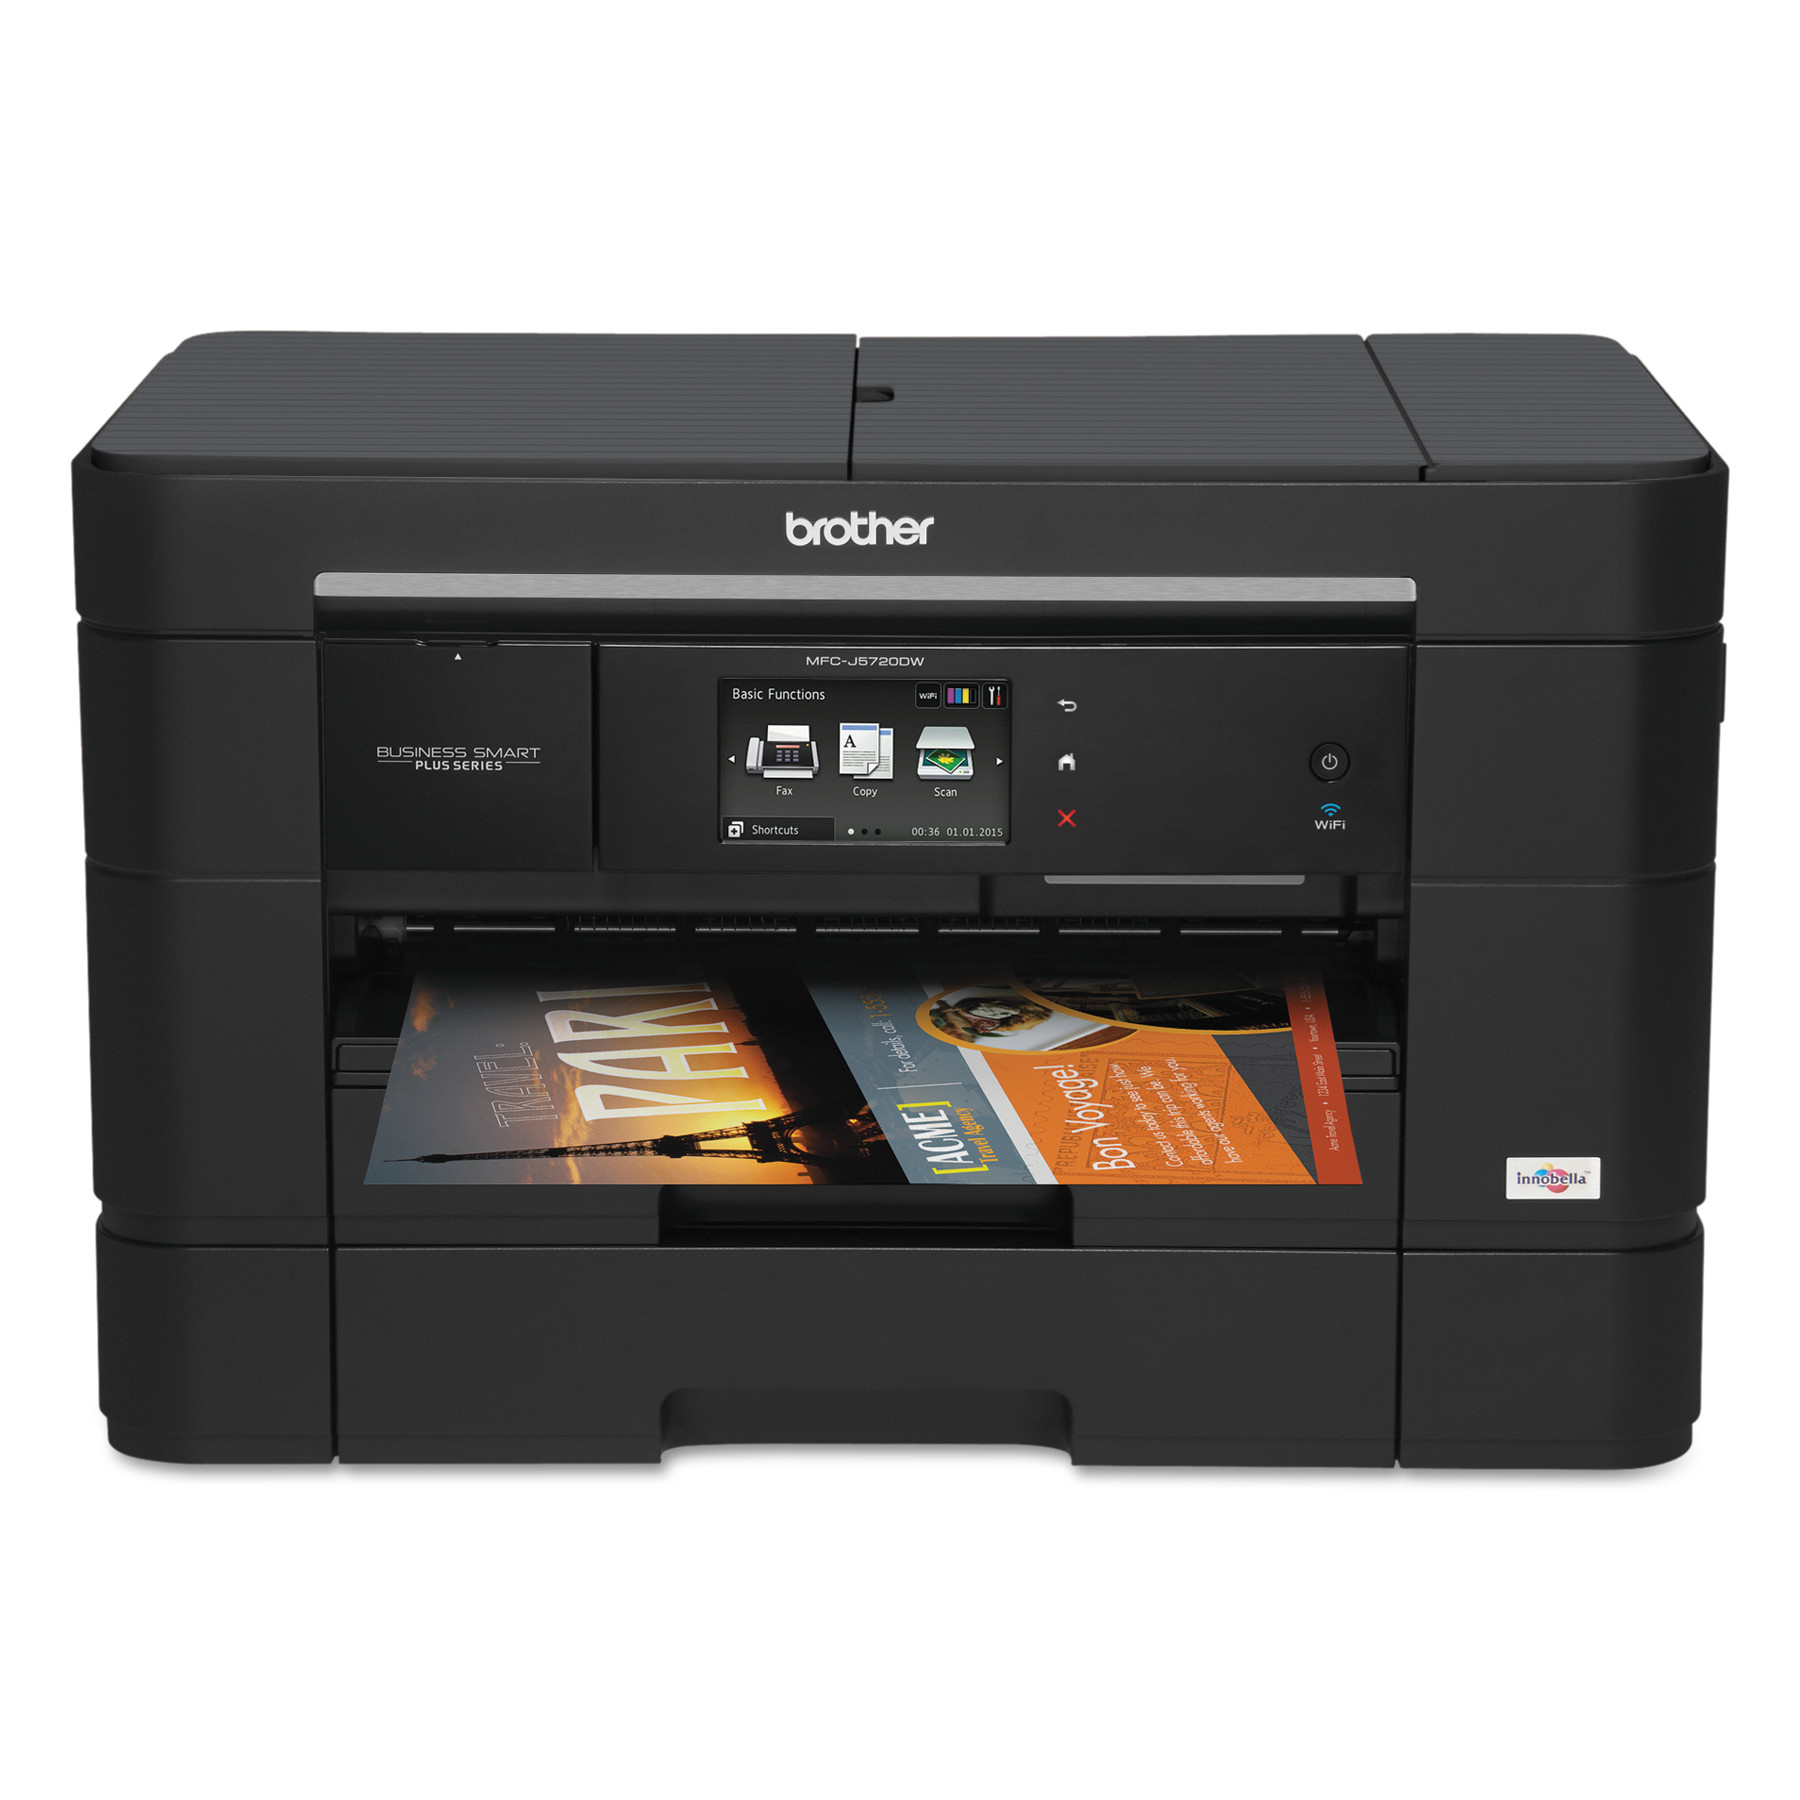 Click here to buy Brother Business Smart Plus MFC-J5720DW All-in-One Inkjet Printer, Copy Fax Print Scan by Brother.